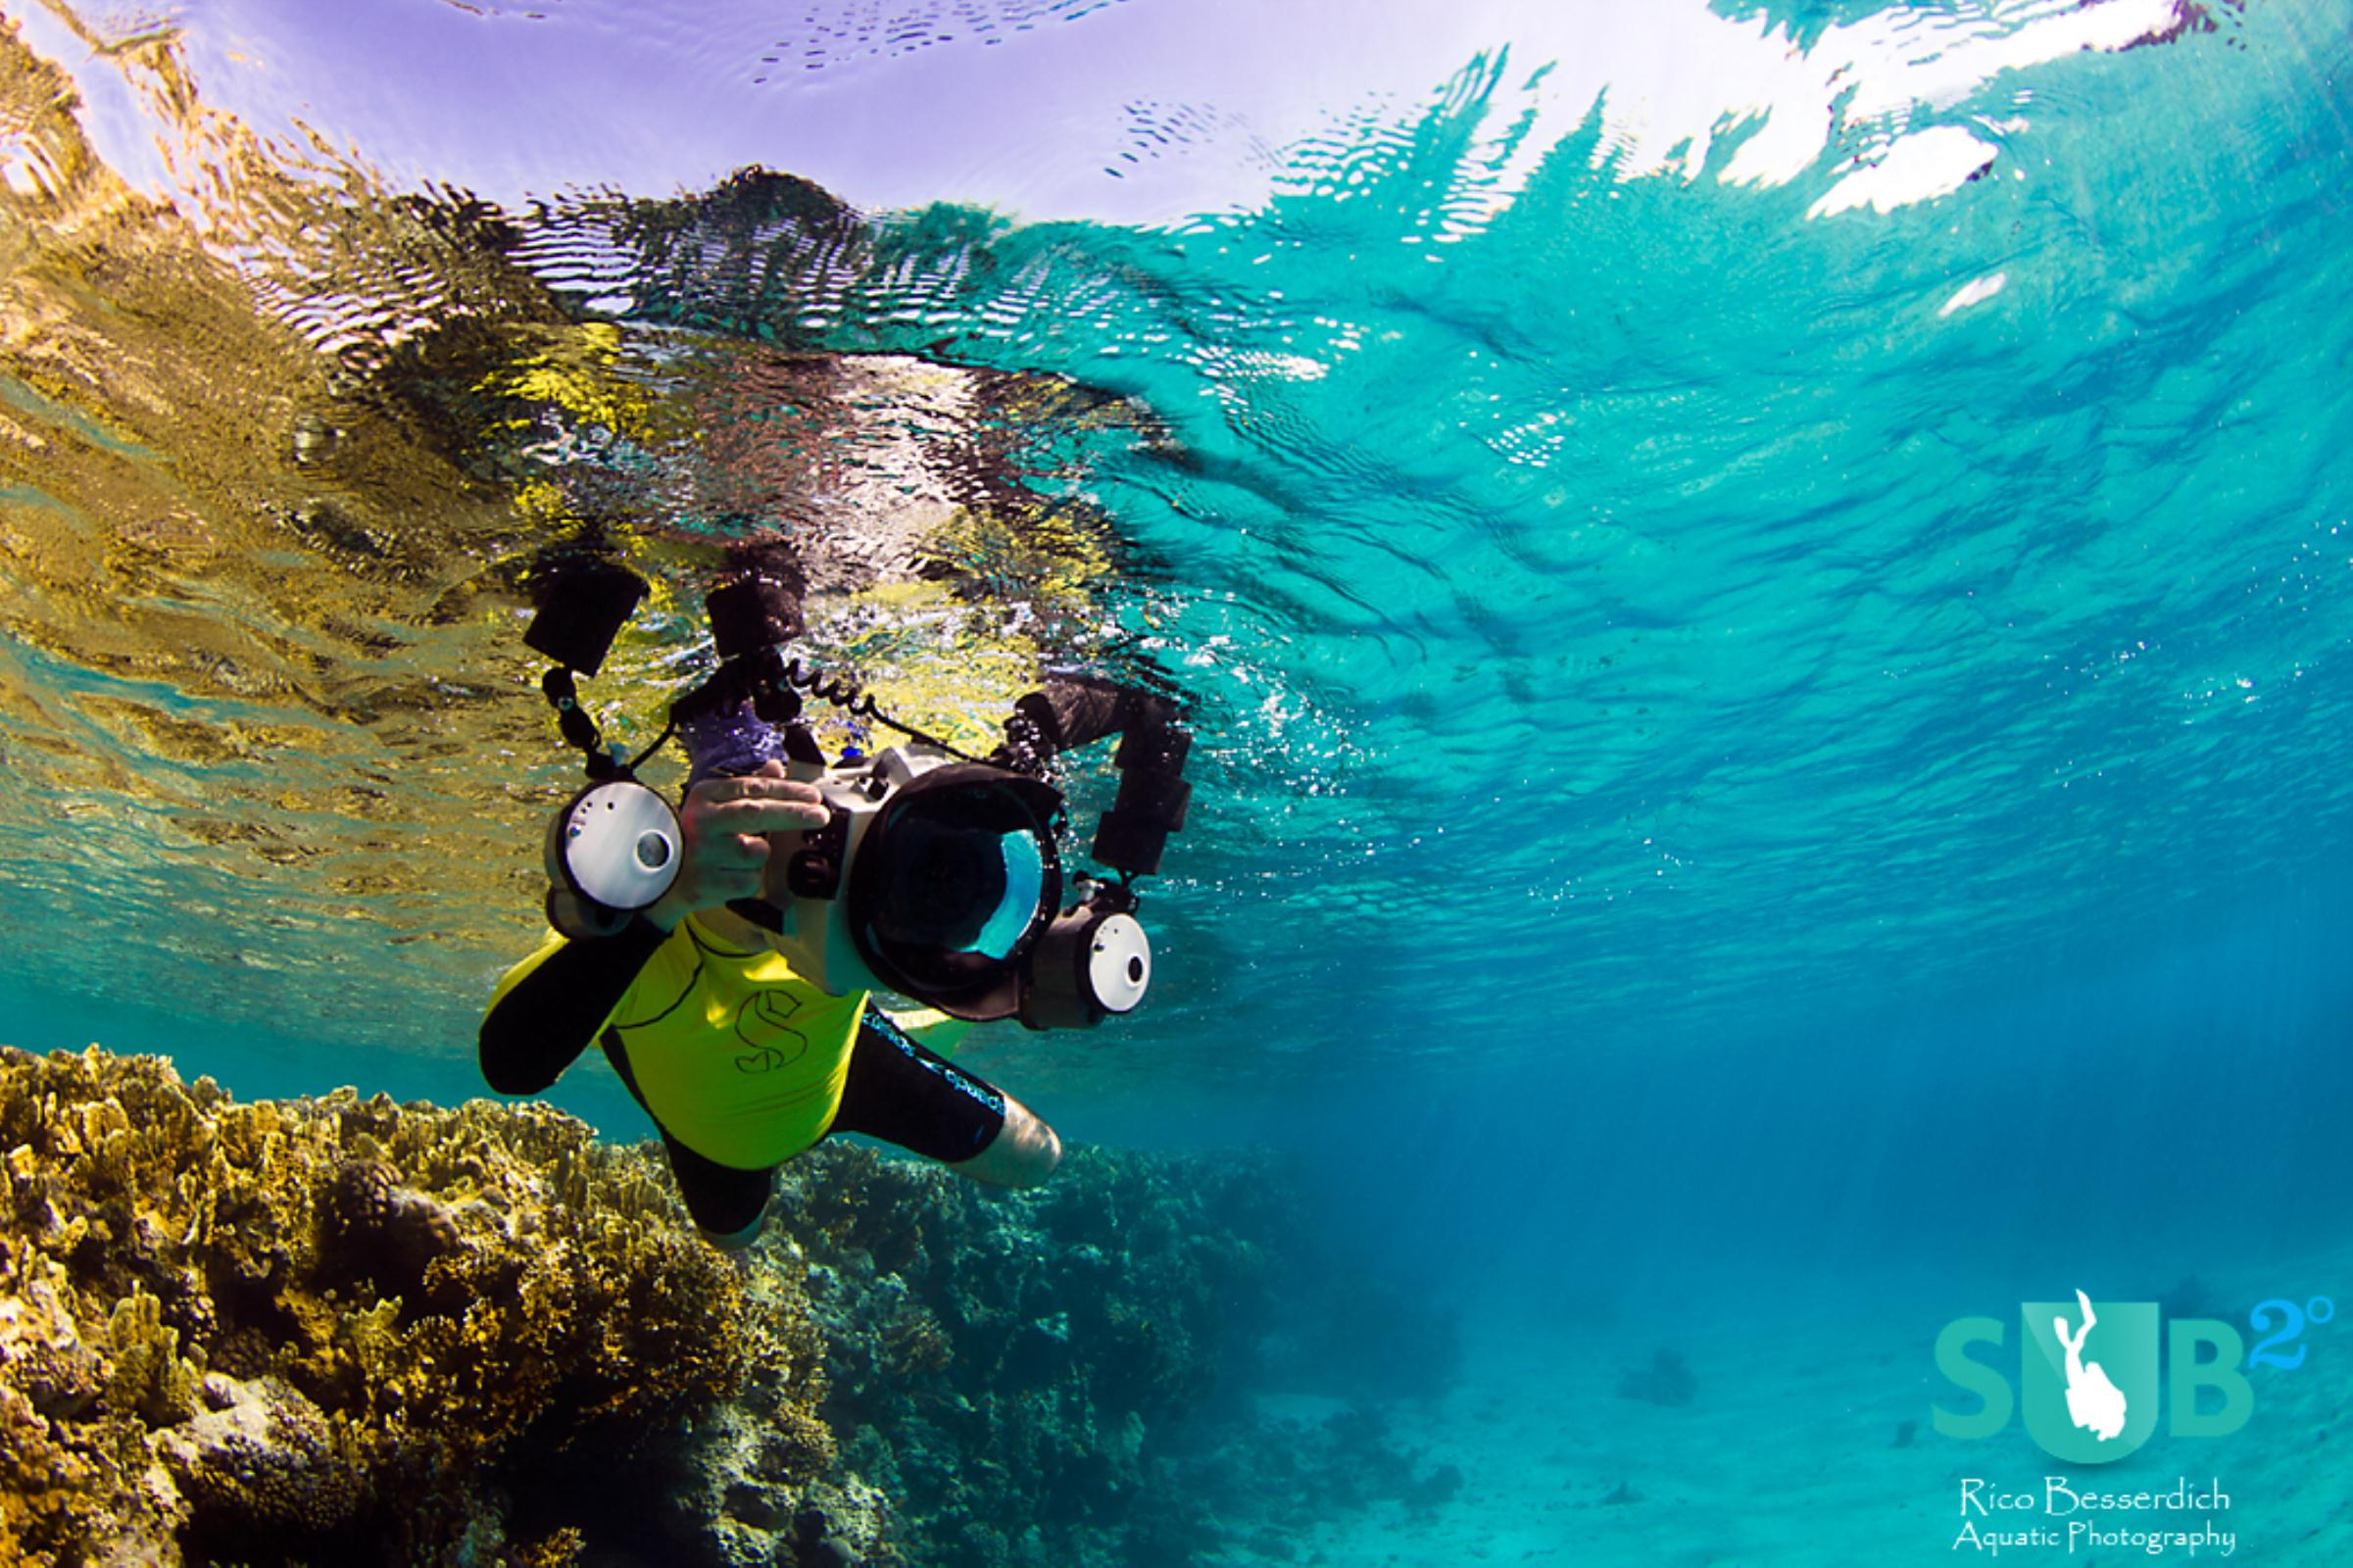 Shooting underwater photos while snorkeling is fun, too. It all just depends on the angle.